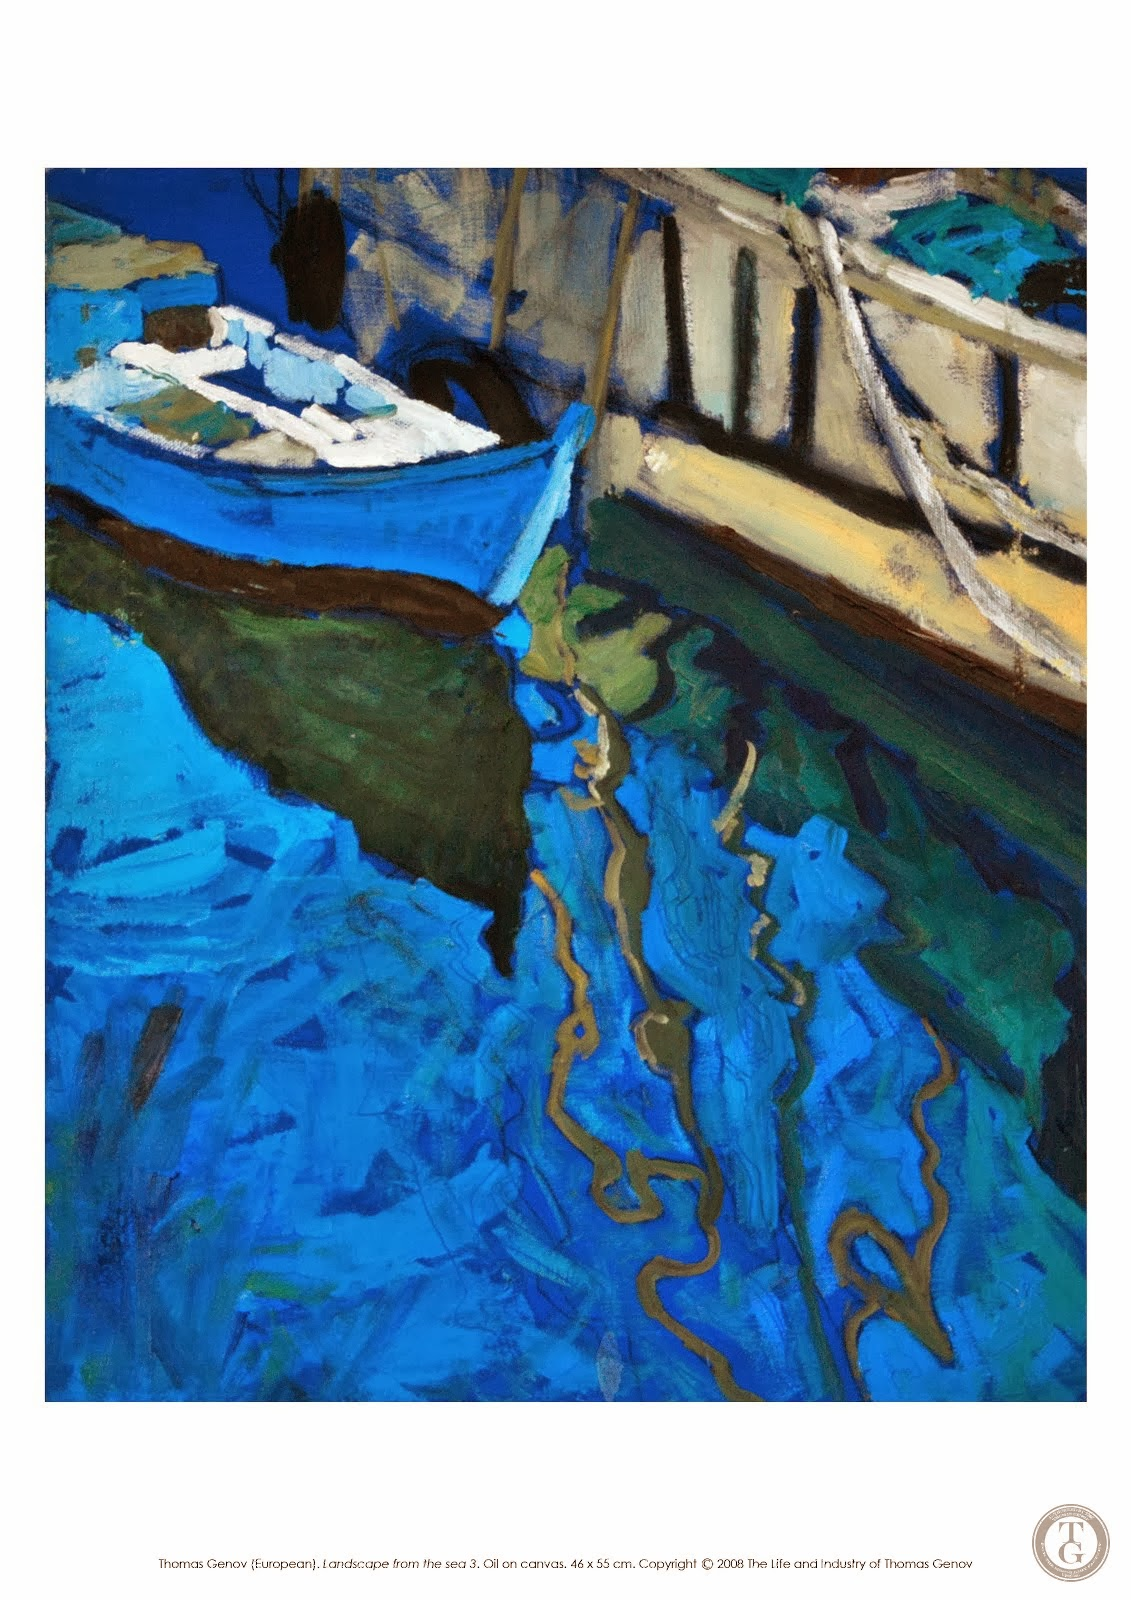 La Mer II, Oil on canvas, 46X55 cm, Planner in Nesebar, 2003